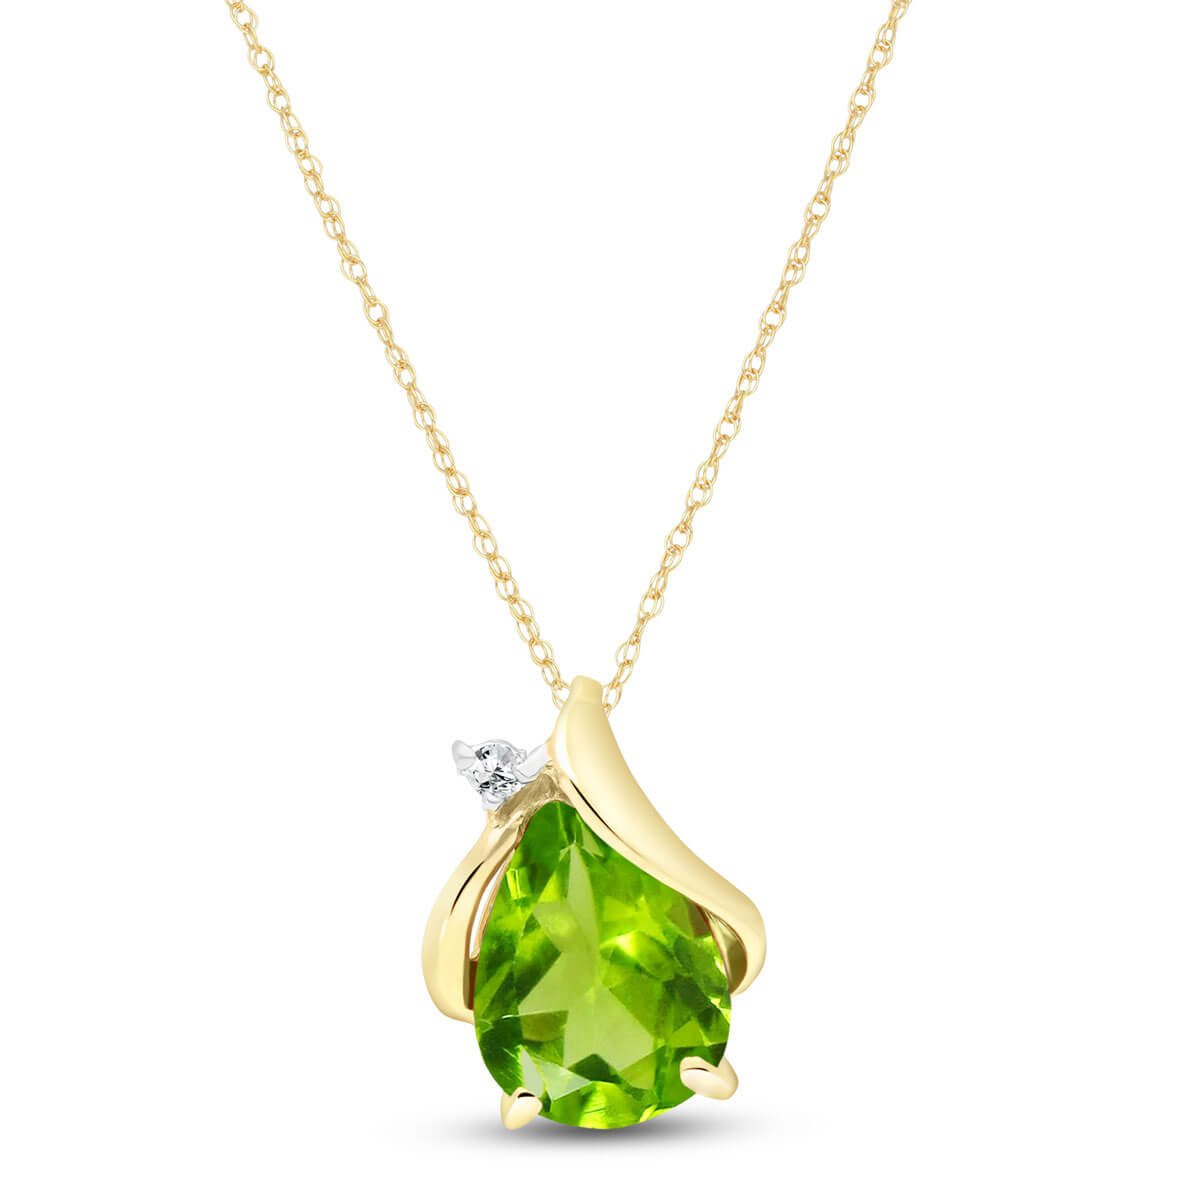 Pear Cut Peridot Pendant Necklace 2.13 ctw in 9ct Gold